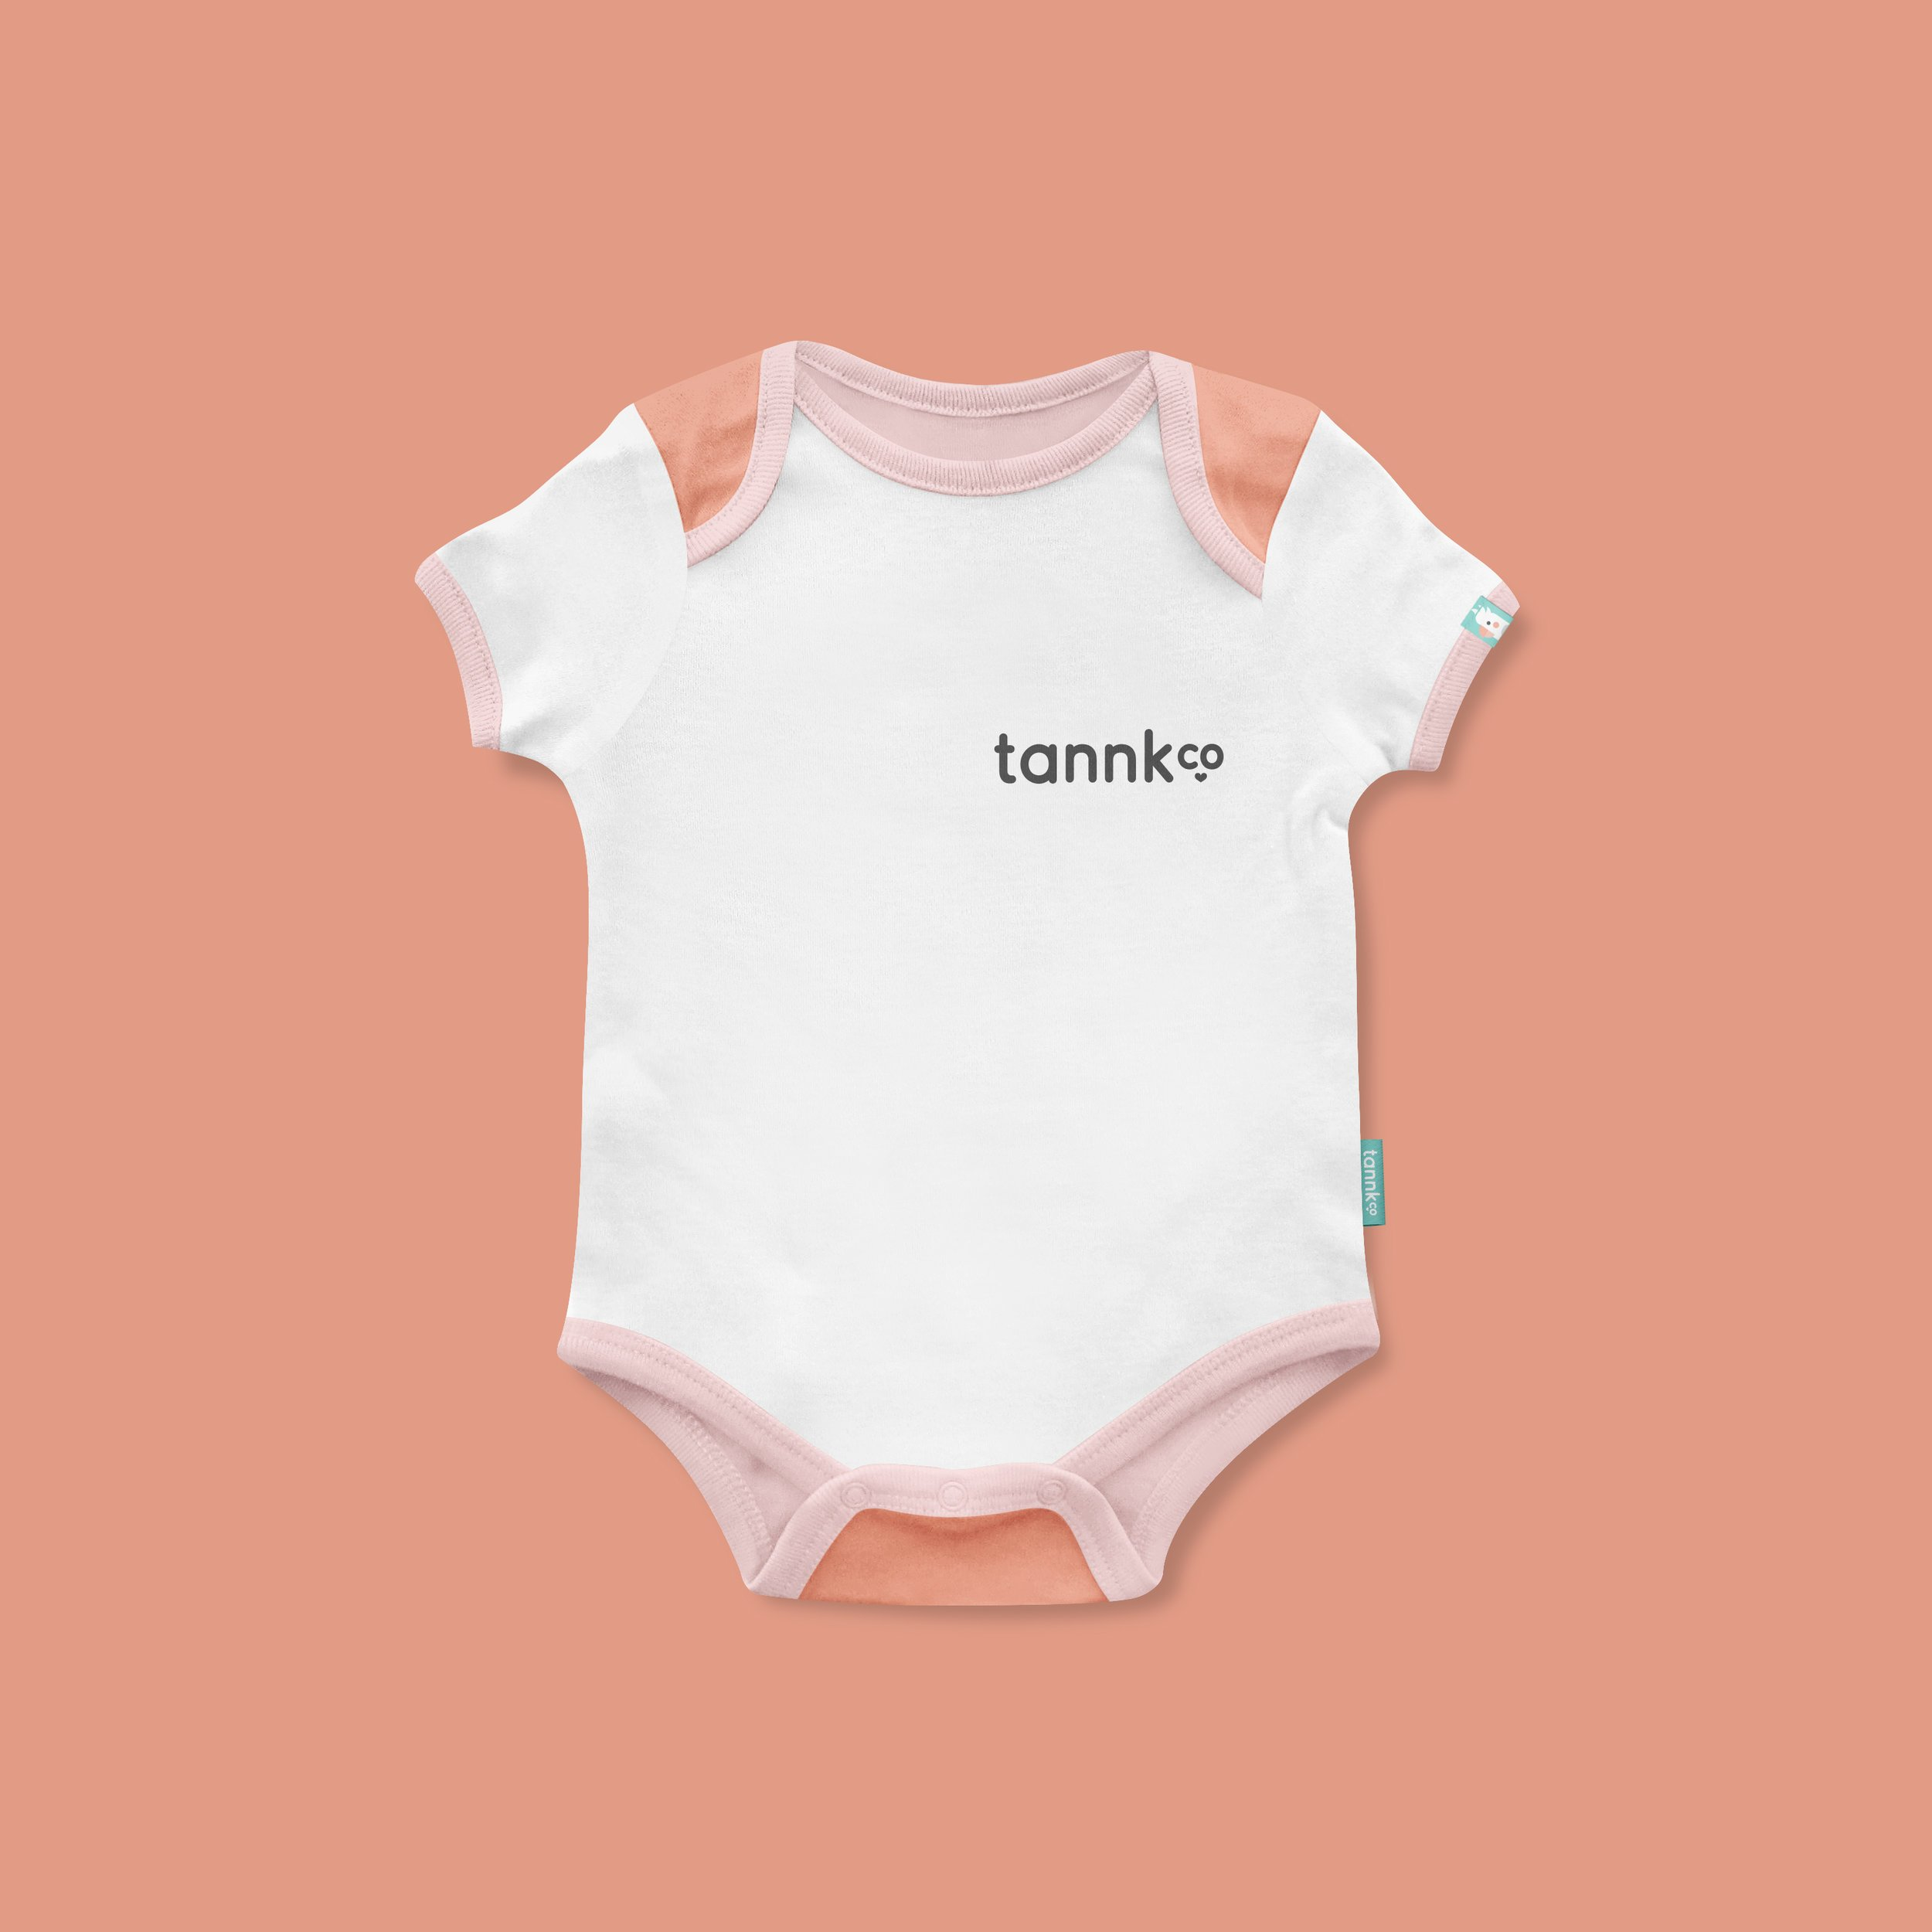 Tannk clothes design